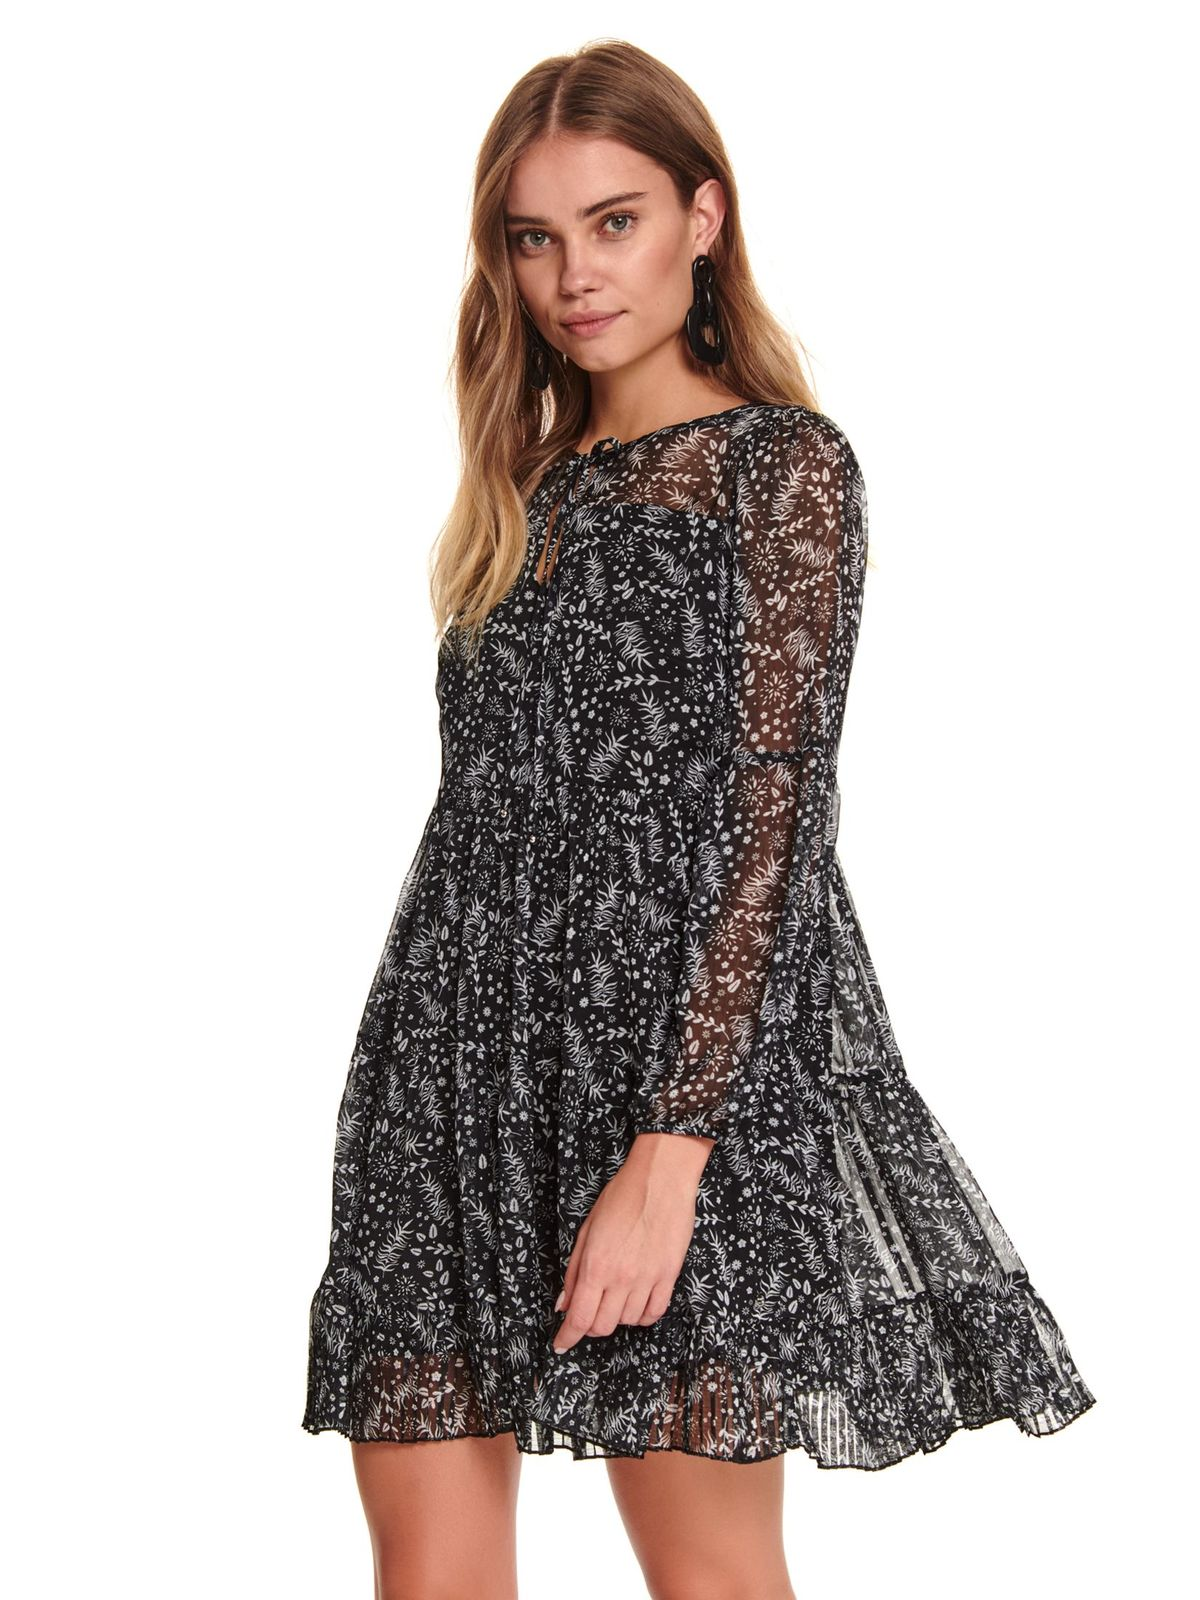 Black dress casual short cut flared voile fabric with floral print